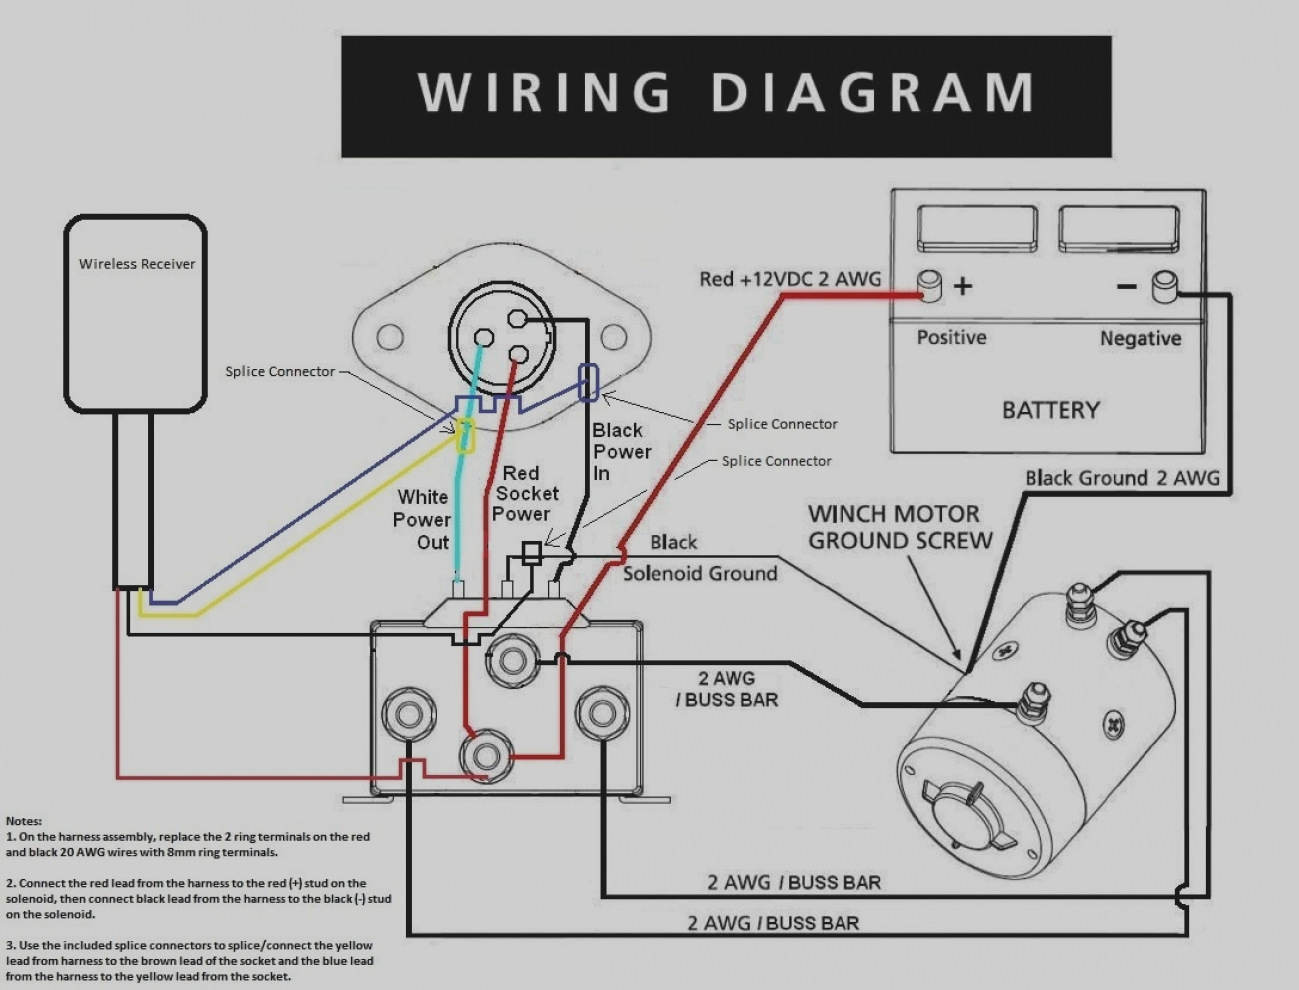 badland wireless winch remote control wiring diagram ... winch remote control wiring diagram